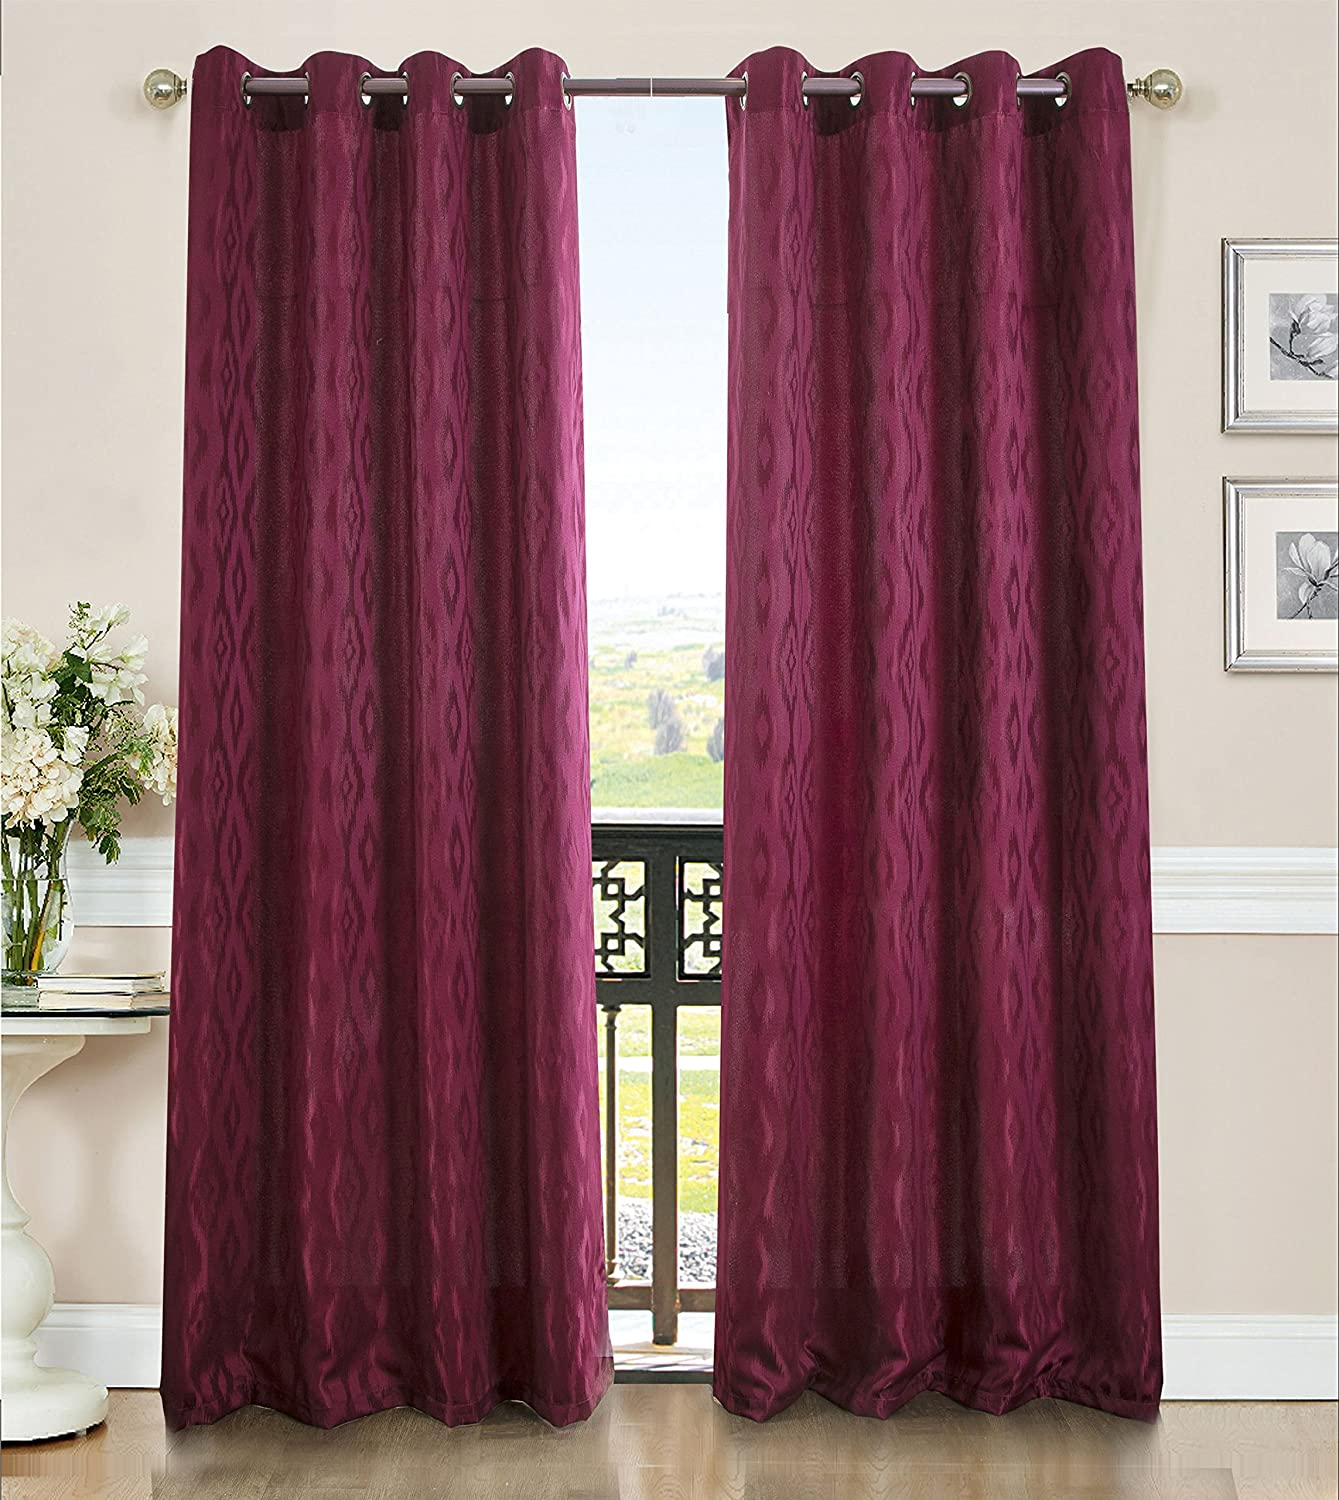 Grommet Curtain Panel PNL10205 RT Designers Collection Lester 54 x 84 in Beige Ramallah Trading Company Inc